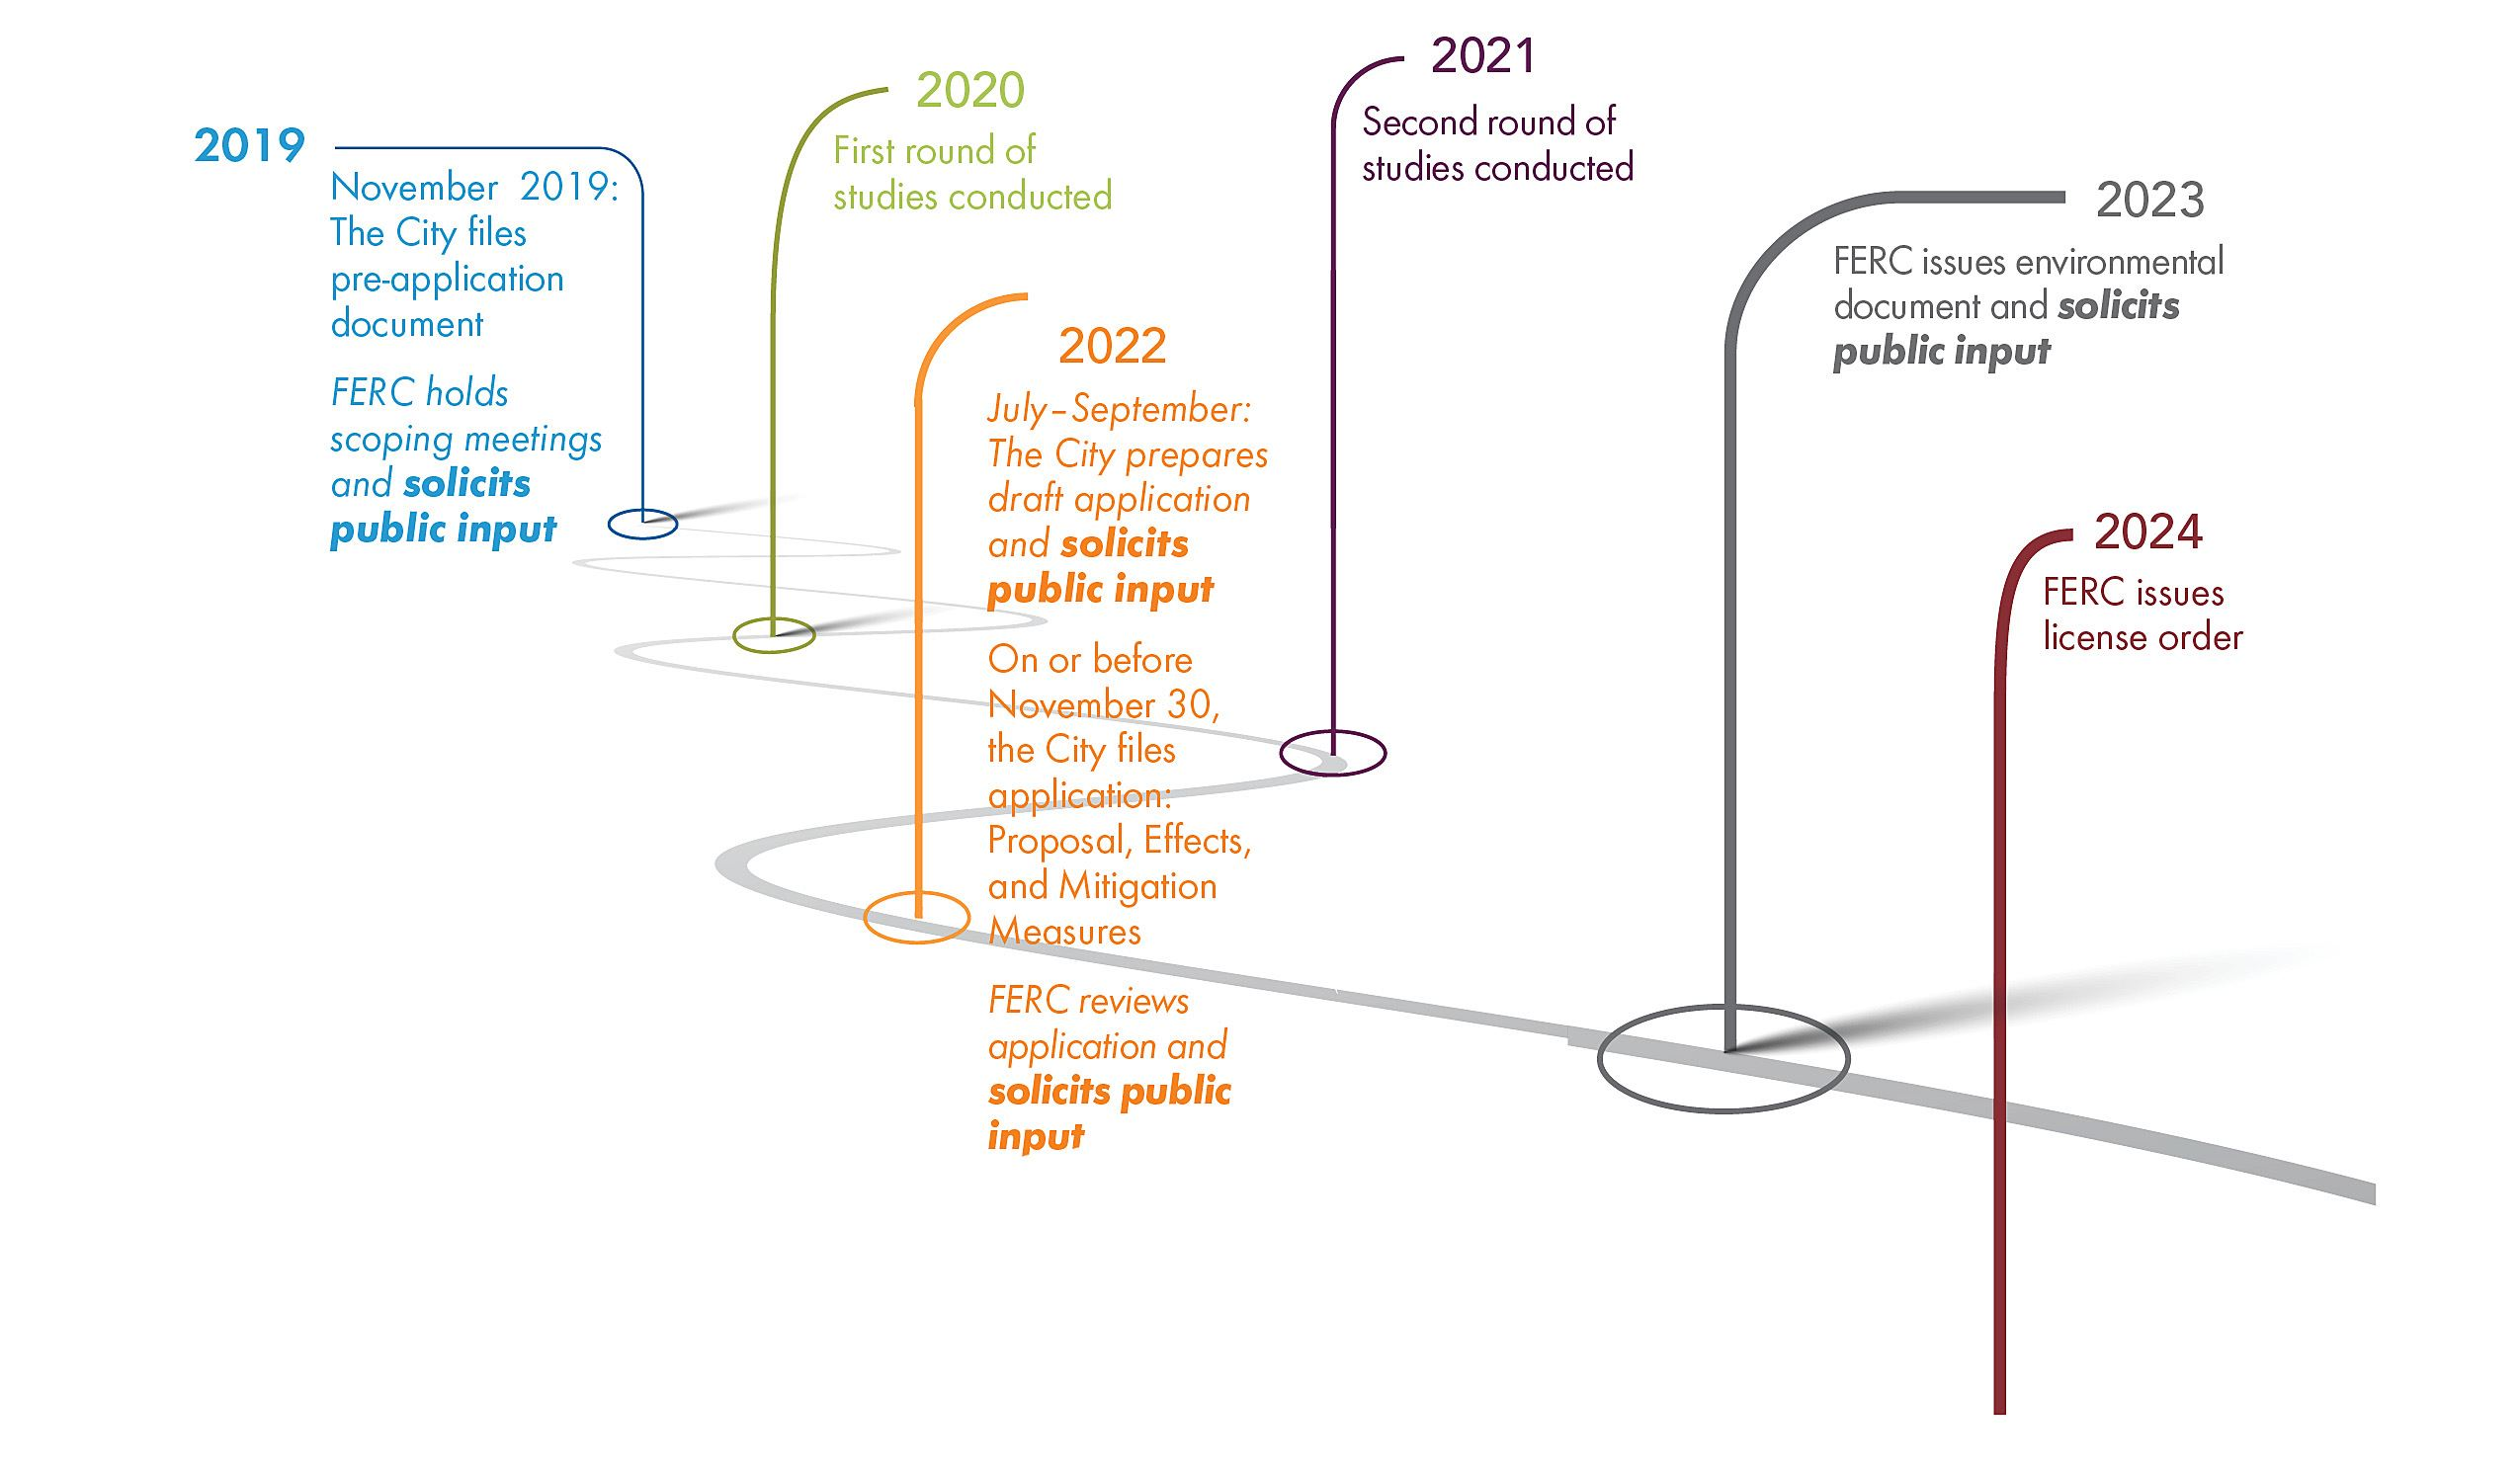 Timeline graphic of Relicensing process for St. CLoud hydroelectric